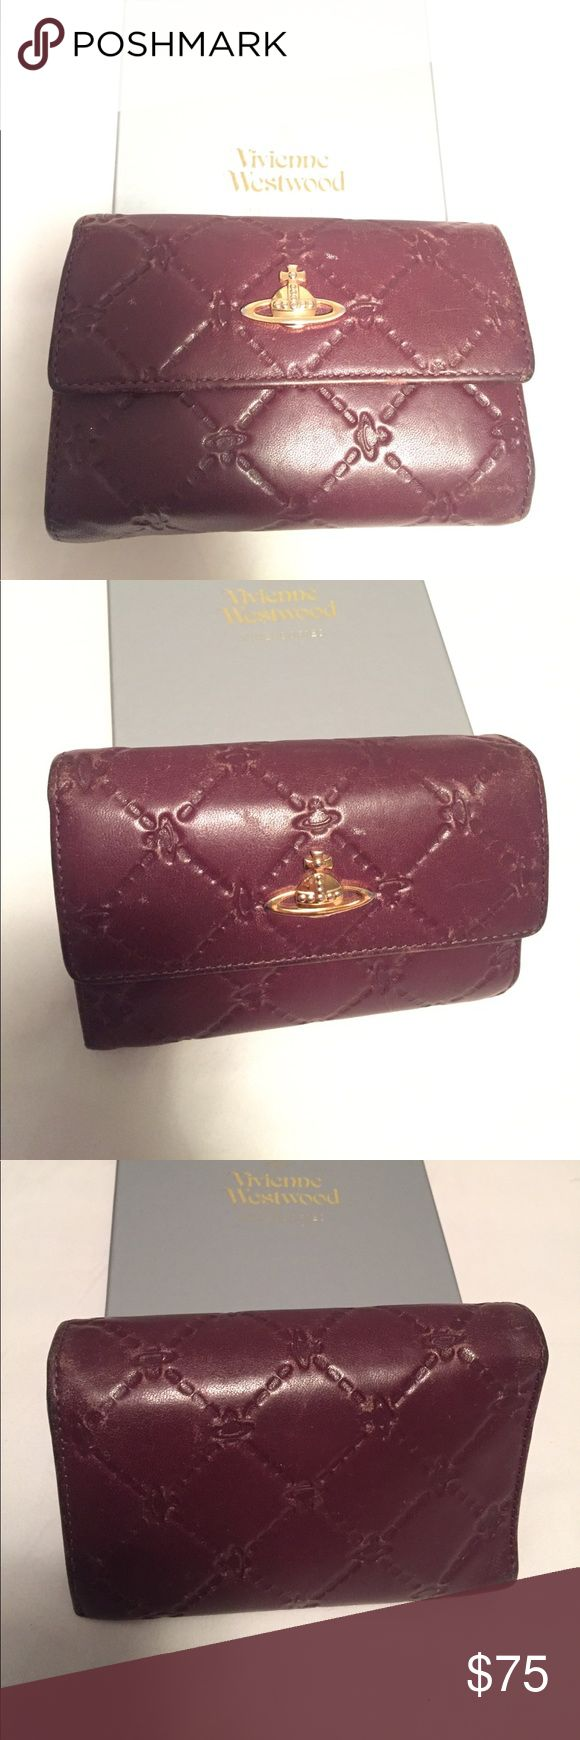 """Vivienne Westwood Wallet USED Vivienne Westwood leather tri-fold wallet with original box. Has lots of compartments for cards, cash, receipts, and coins. Snap closure.                              There are scratches, rips, and slight discoloration from wear and tear.                                                             Color: Bordeaux                                                Dimensions:  5.5"""" x 4"""" x 1.5"""" Vivienne Westwood Bags Wallets"""